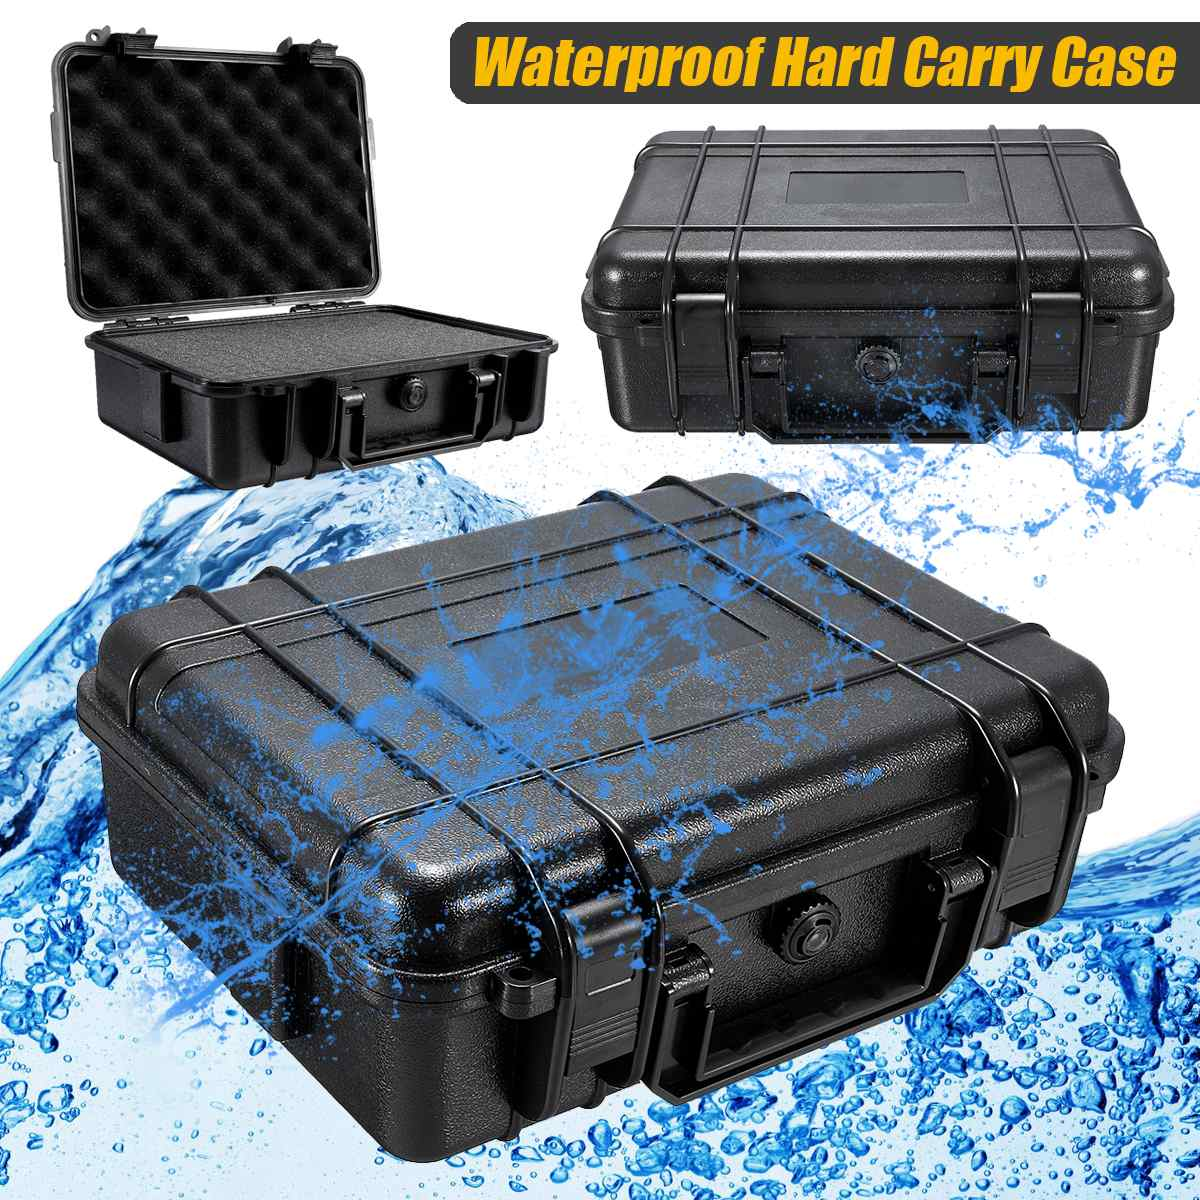 7 Sizes Waterproof Hard Carry Case Bag Tool Kits with Sponge Storage Box Safety Protector Organizer